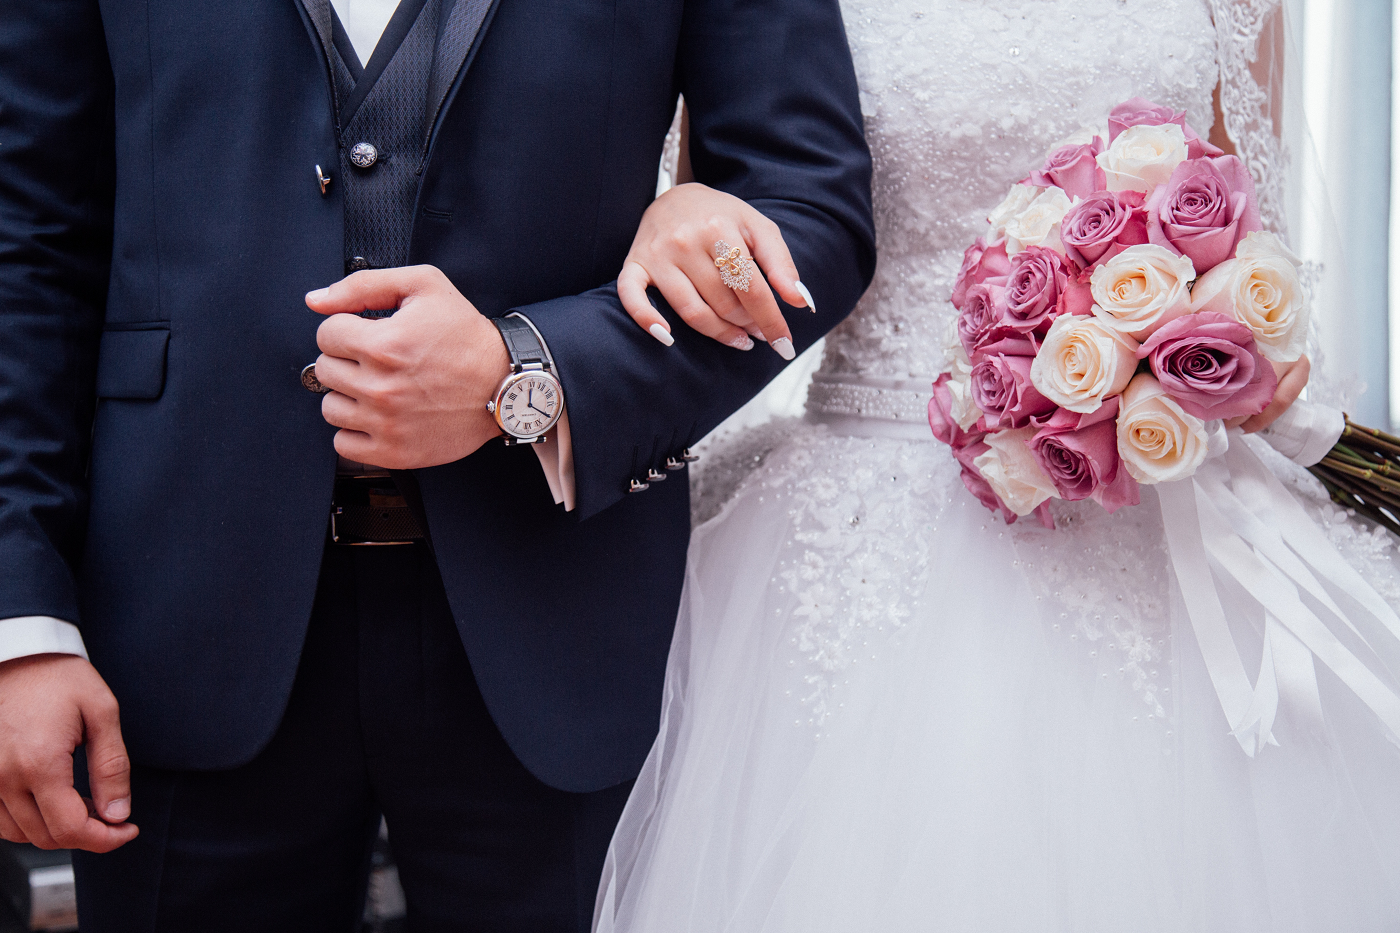 How Marriage Affects Your Legal and Financial Status